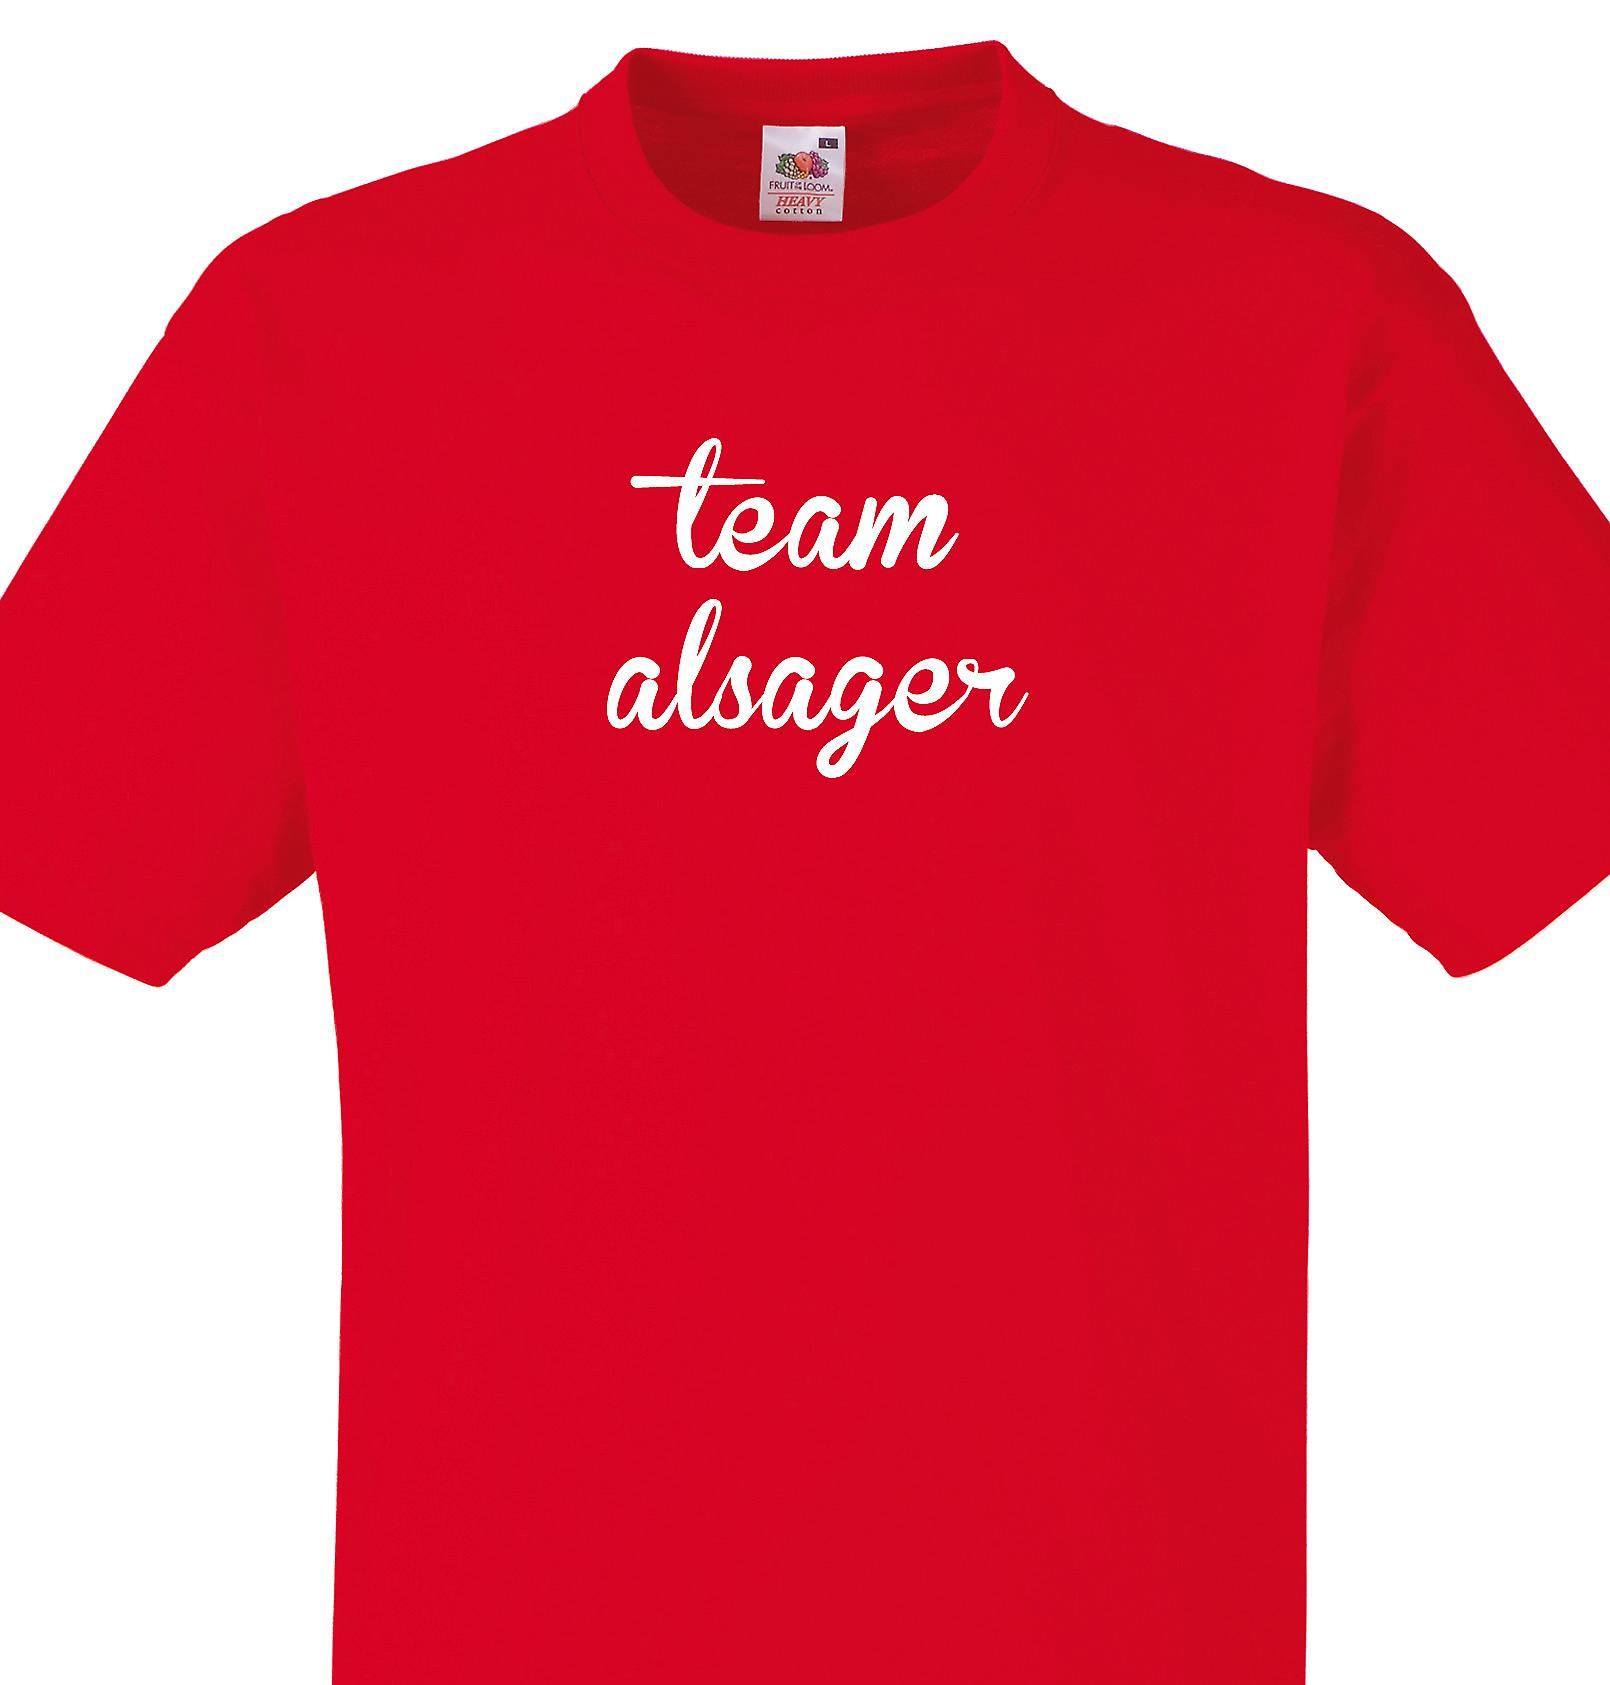 Team Alsager Red T shirt